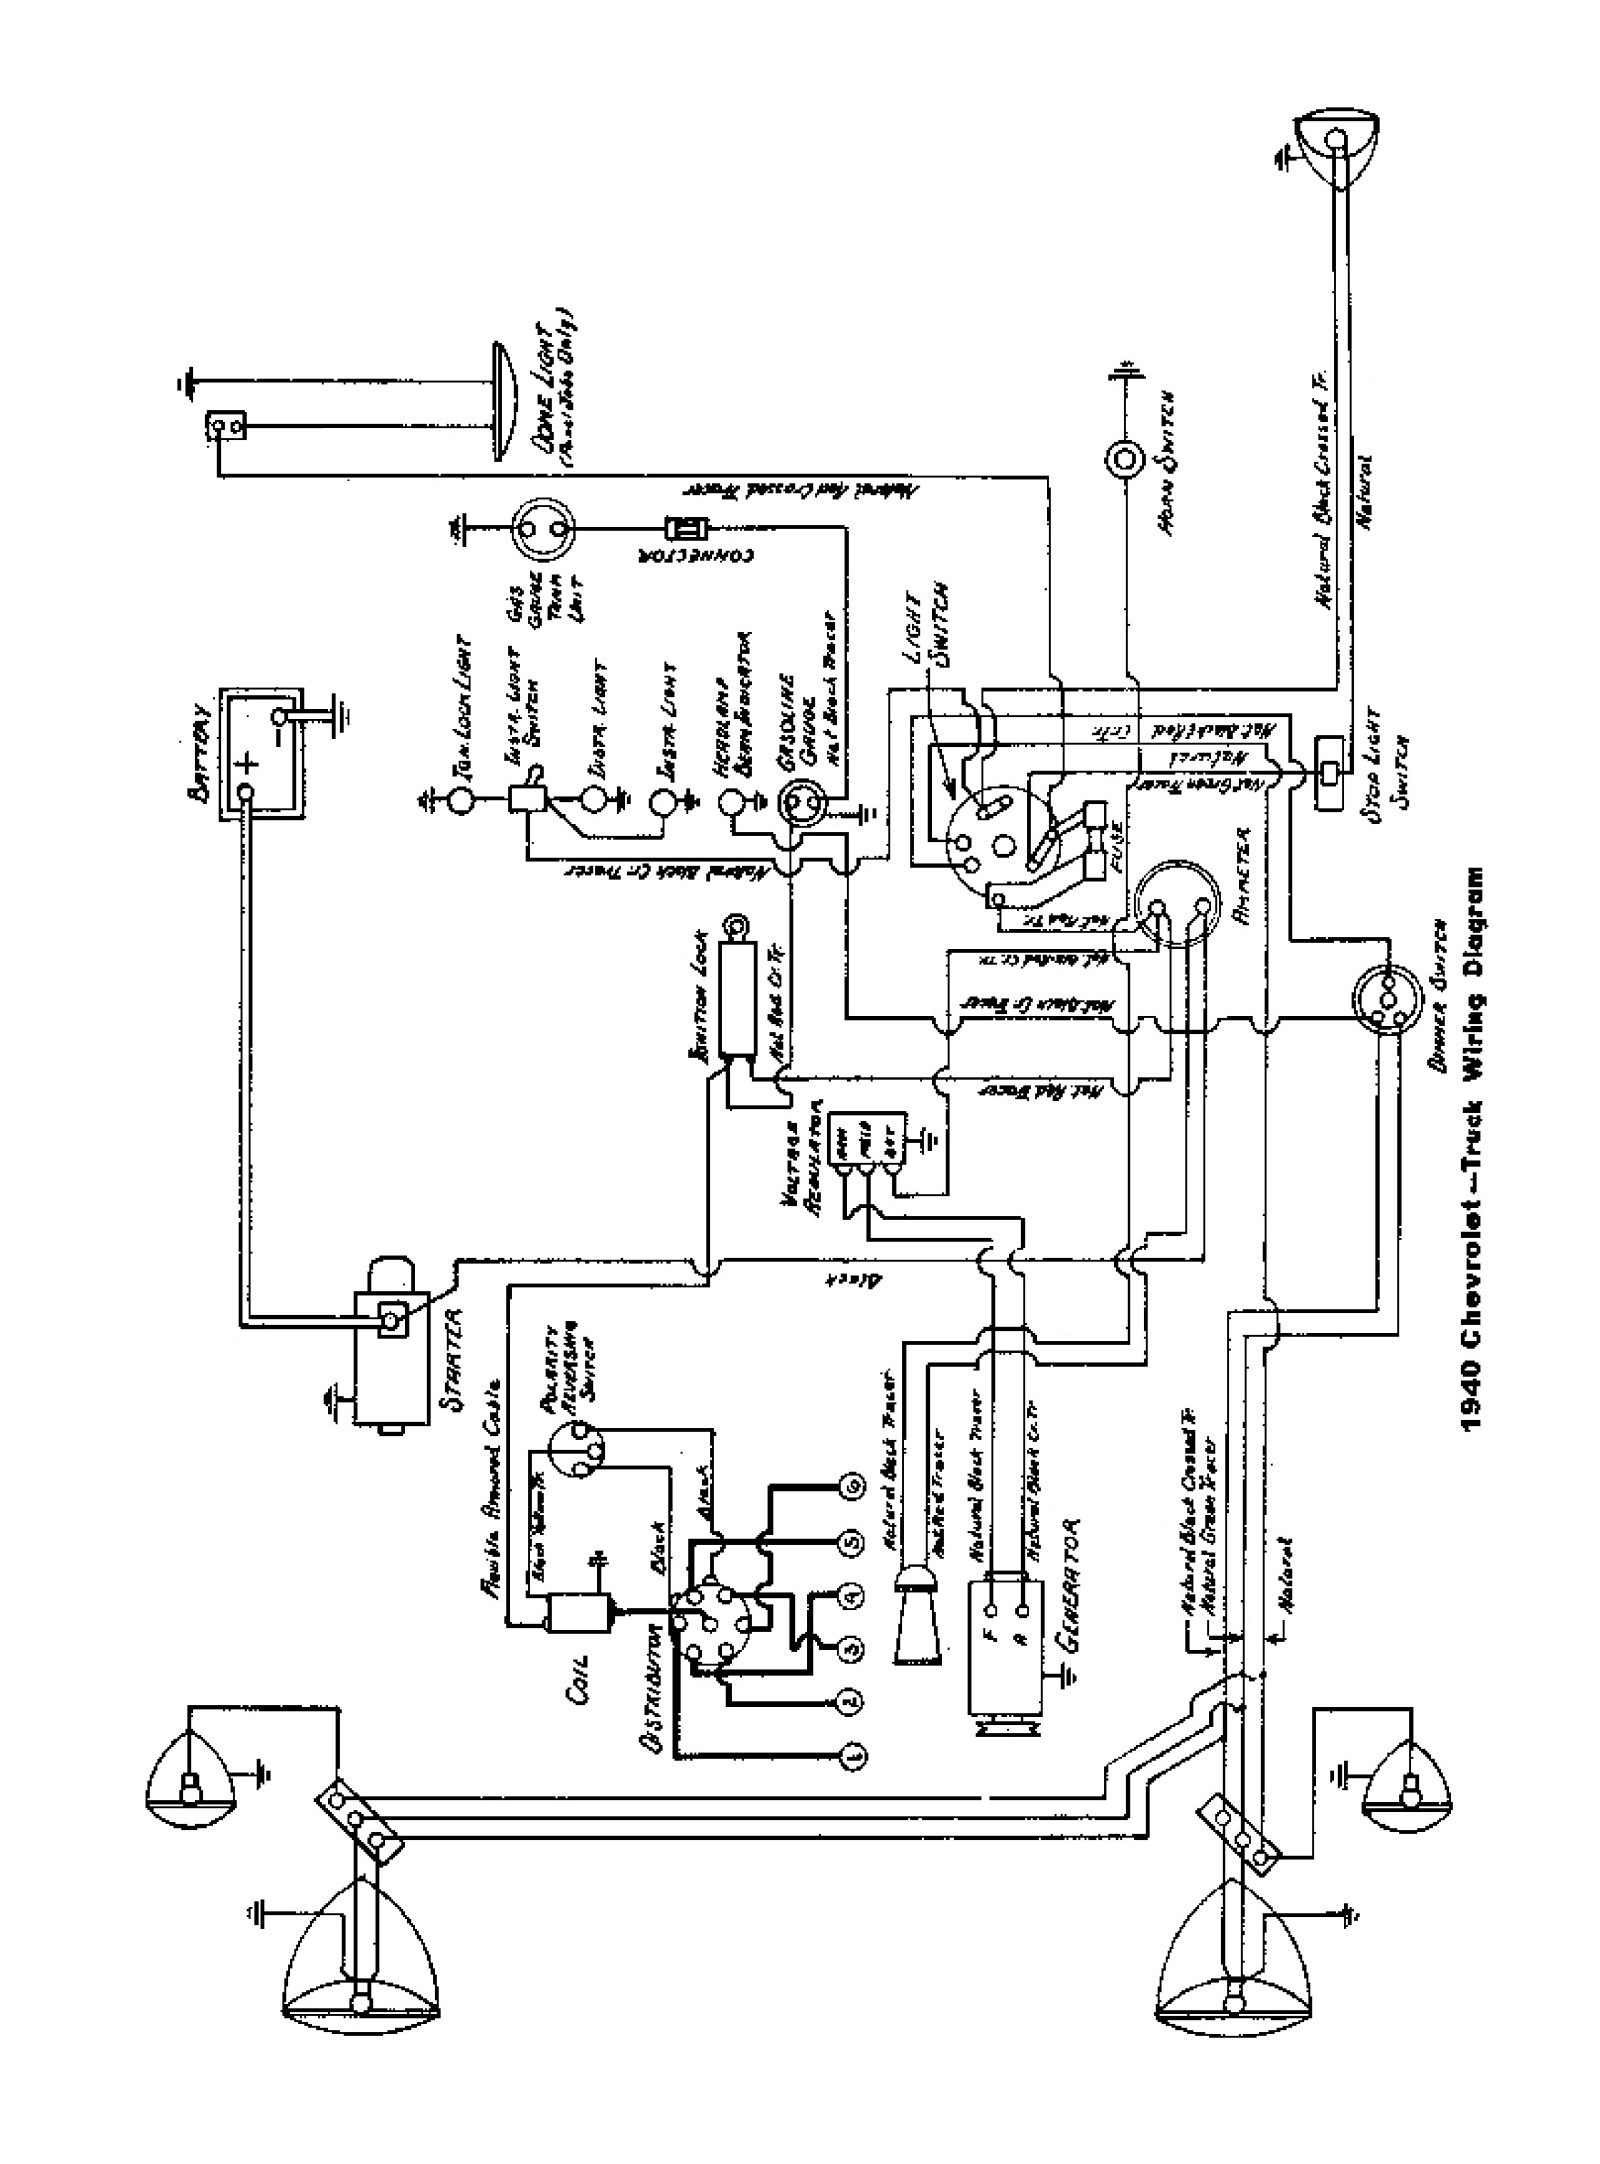 1956 Chevy Wiring | Wiring Diagram - 1979 Chevy Truck Wiring Diagram